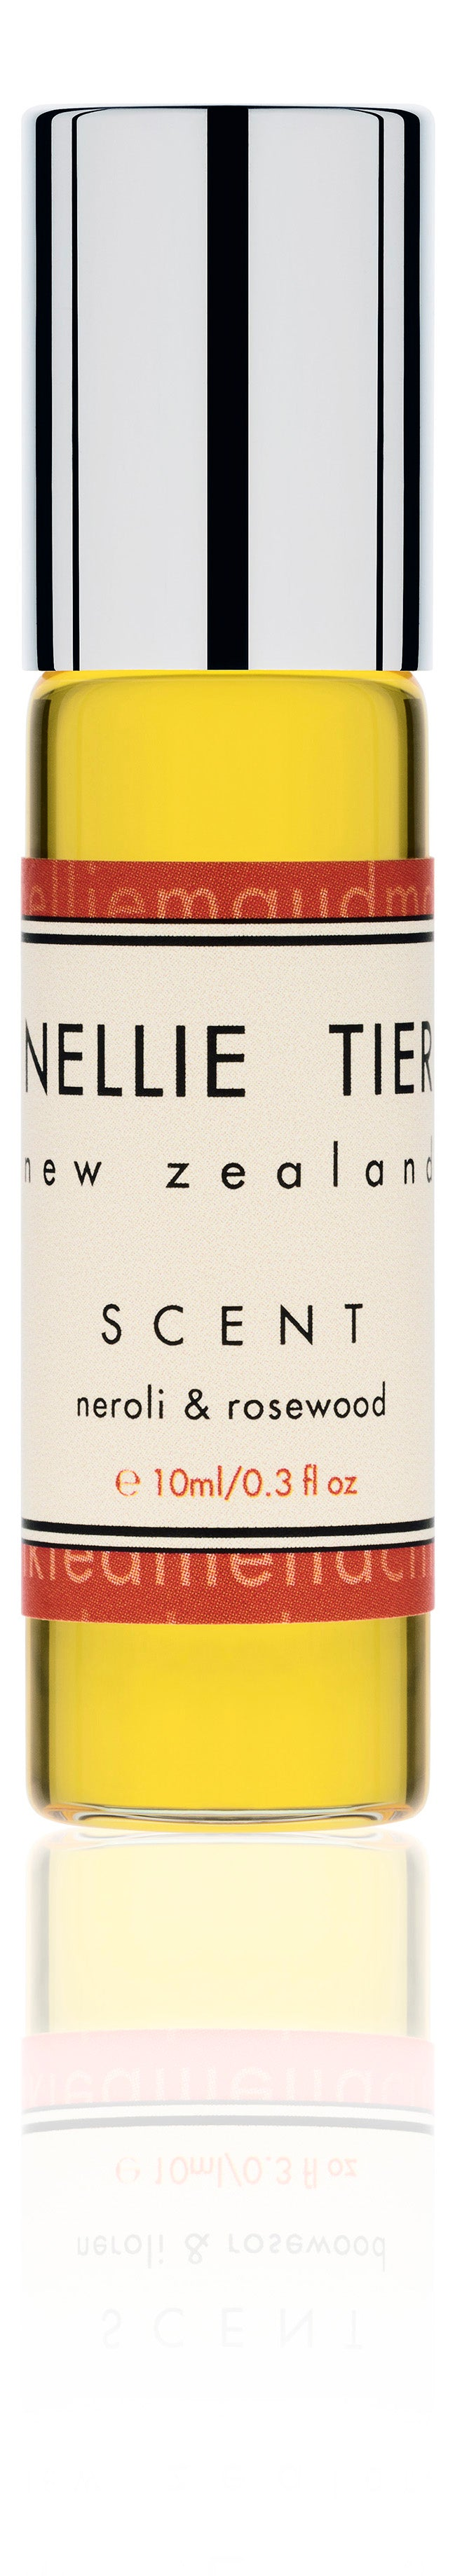 Scent - Neroli and Rosewood